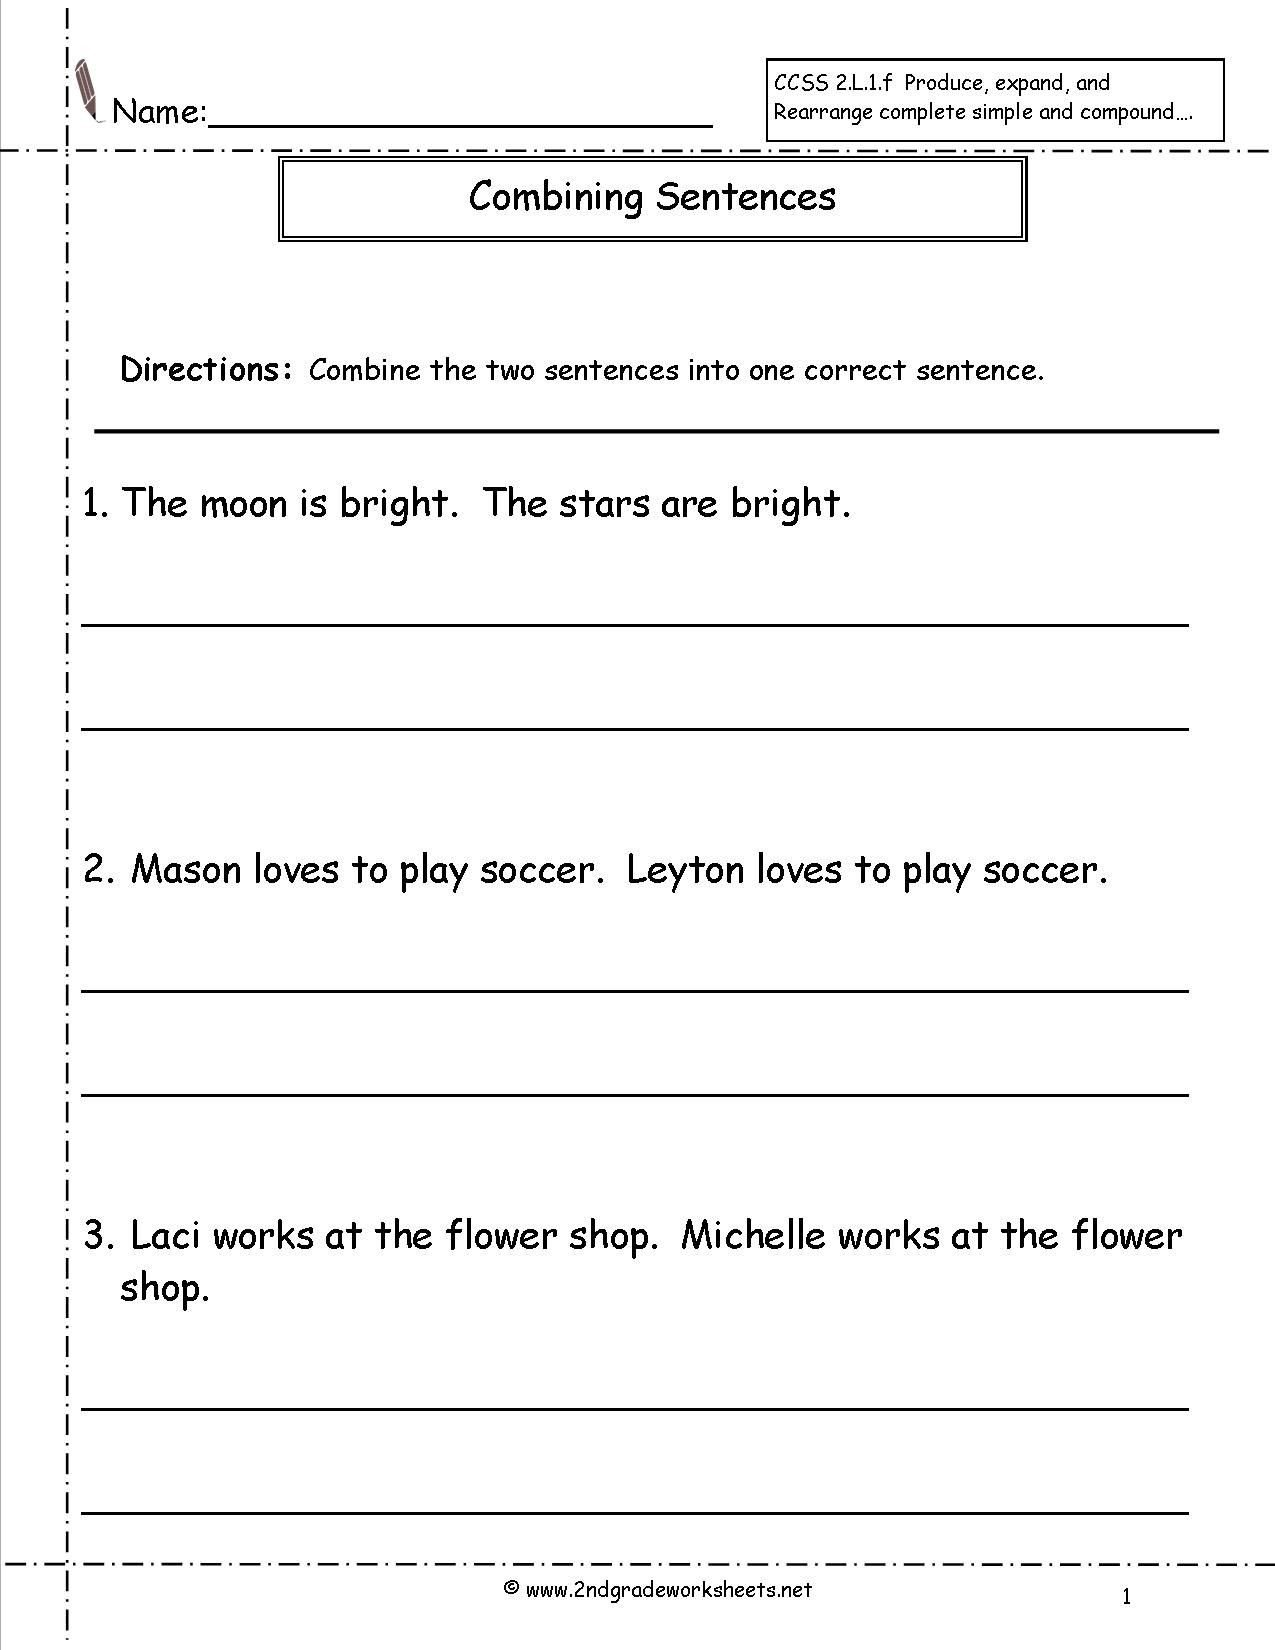 Complete Sentences Worksheets 2nd Grade Bining Sentences Worksheet